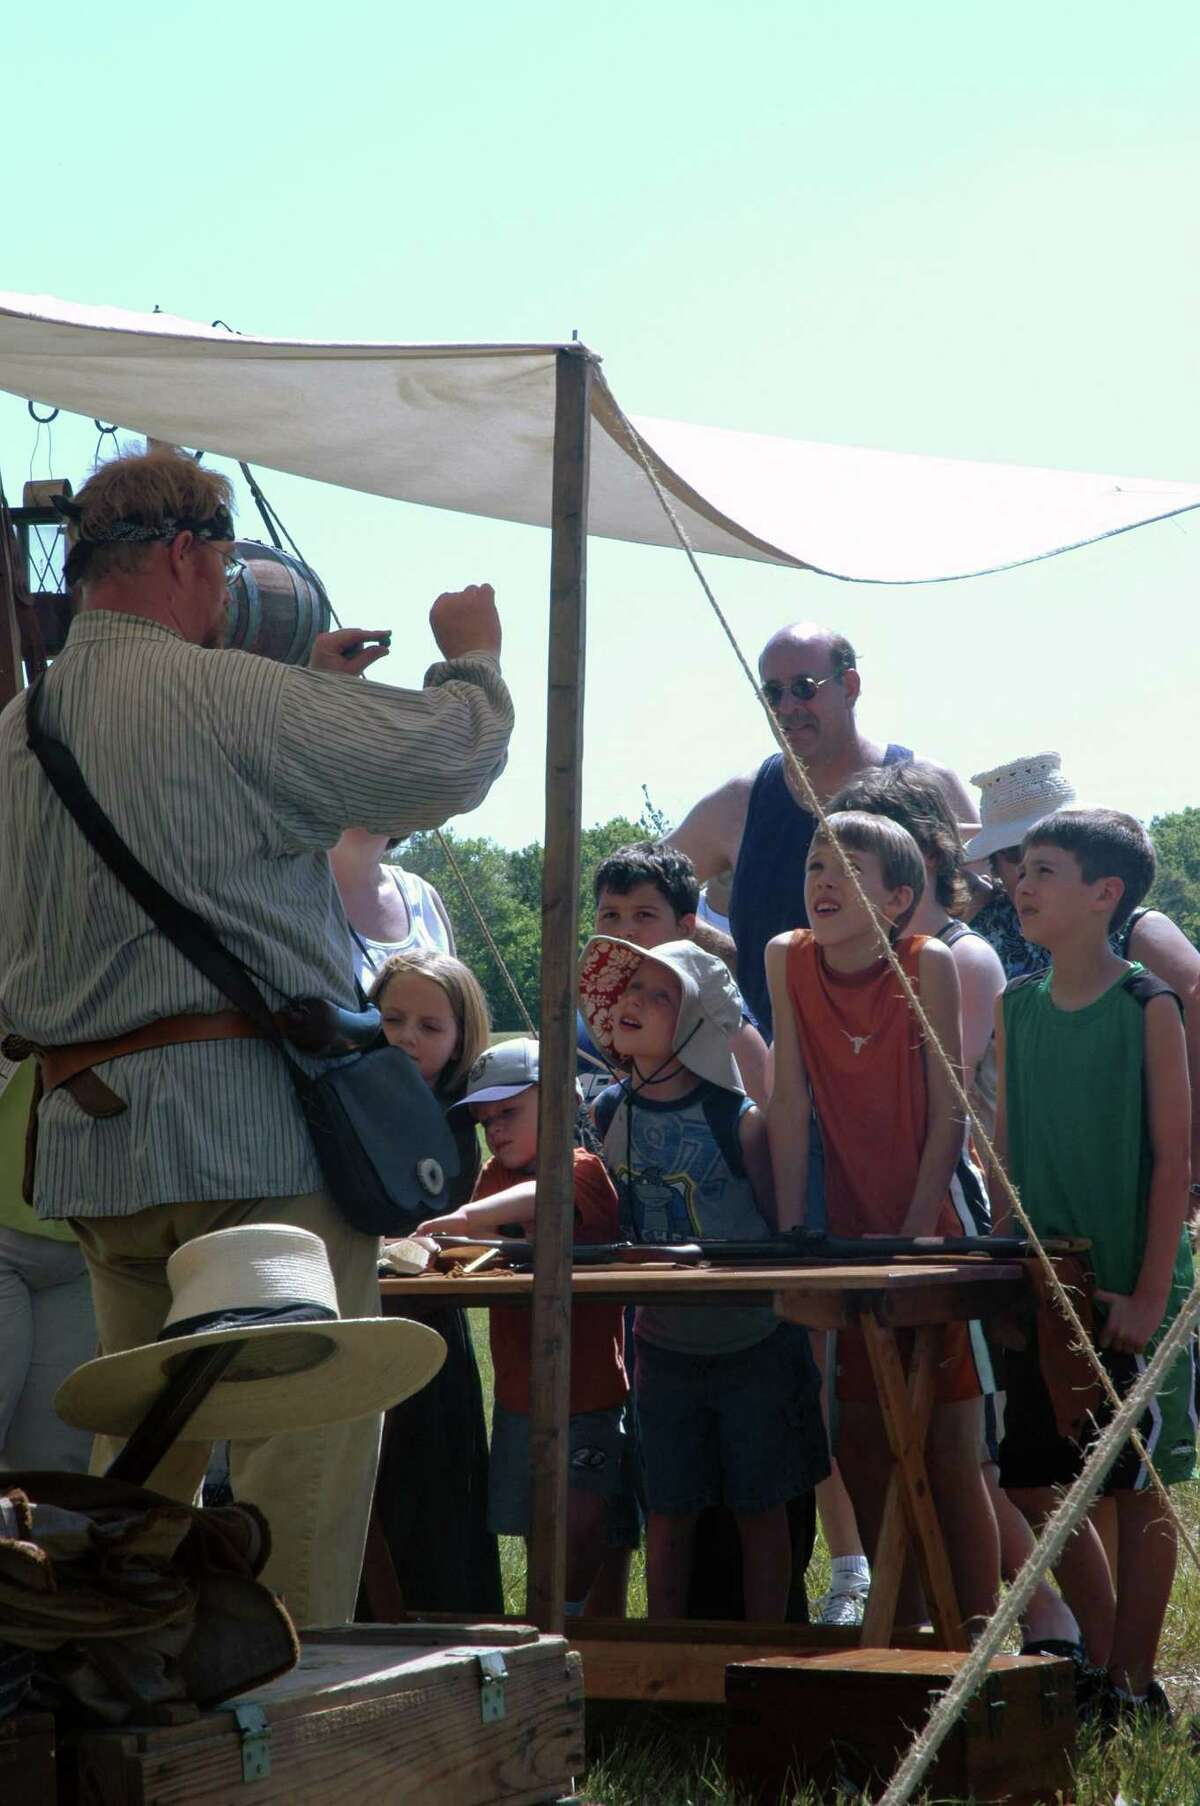 The festival will feature living history exhibits.